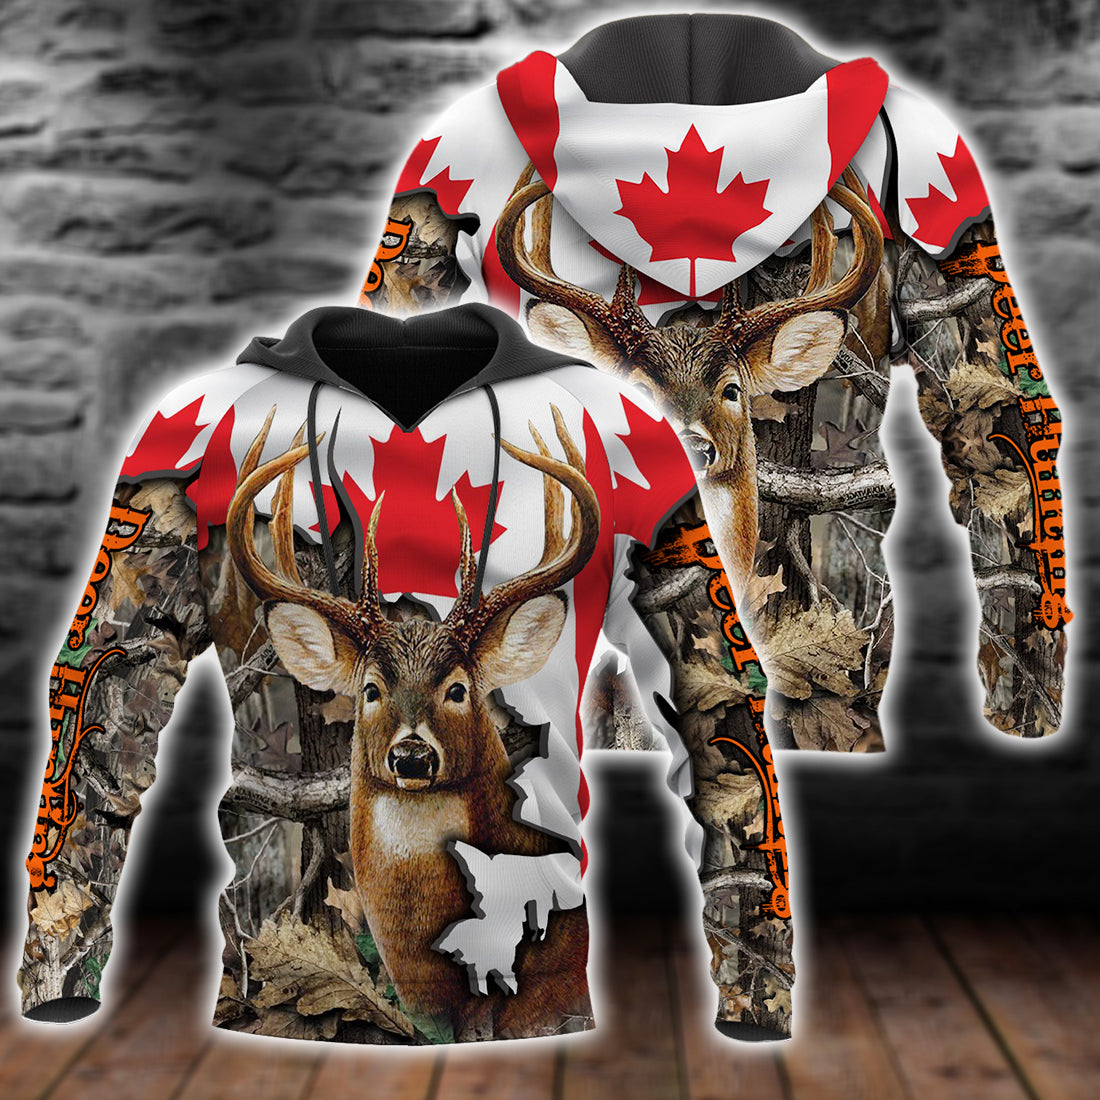 DEER HUNTING CANADA ALL OVER PRINT SHIRT FOR MEN AND WOMEN